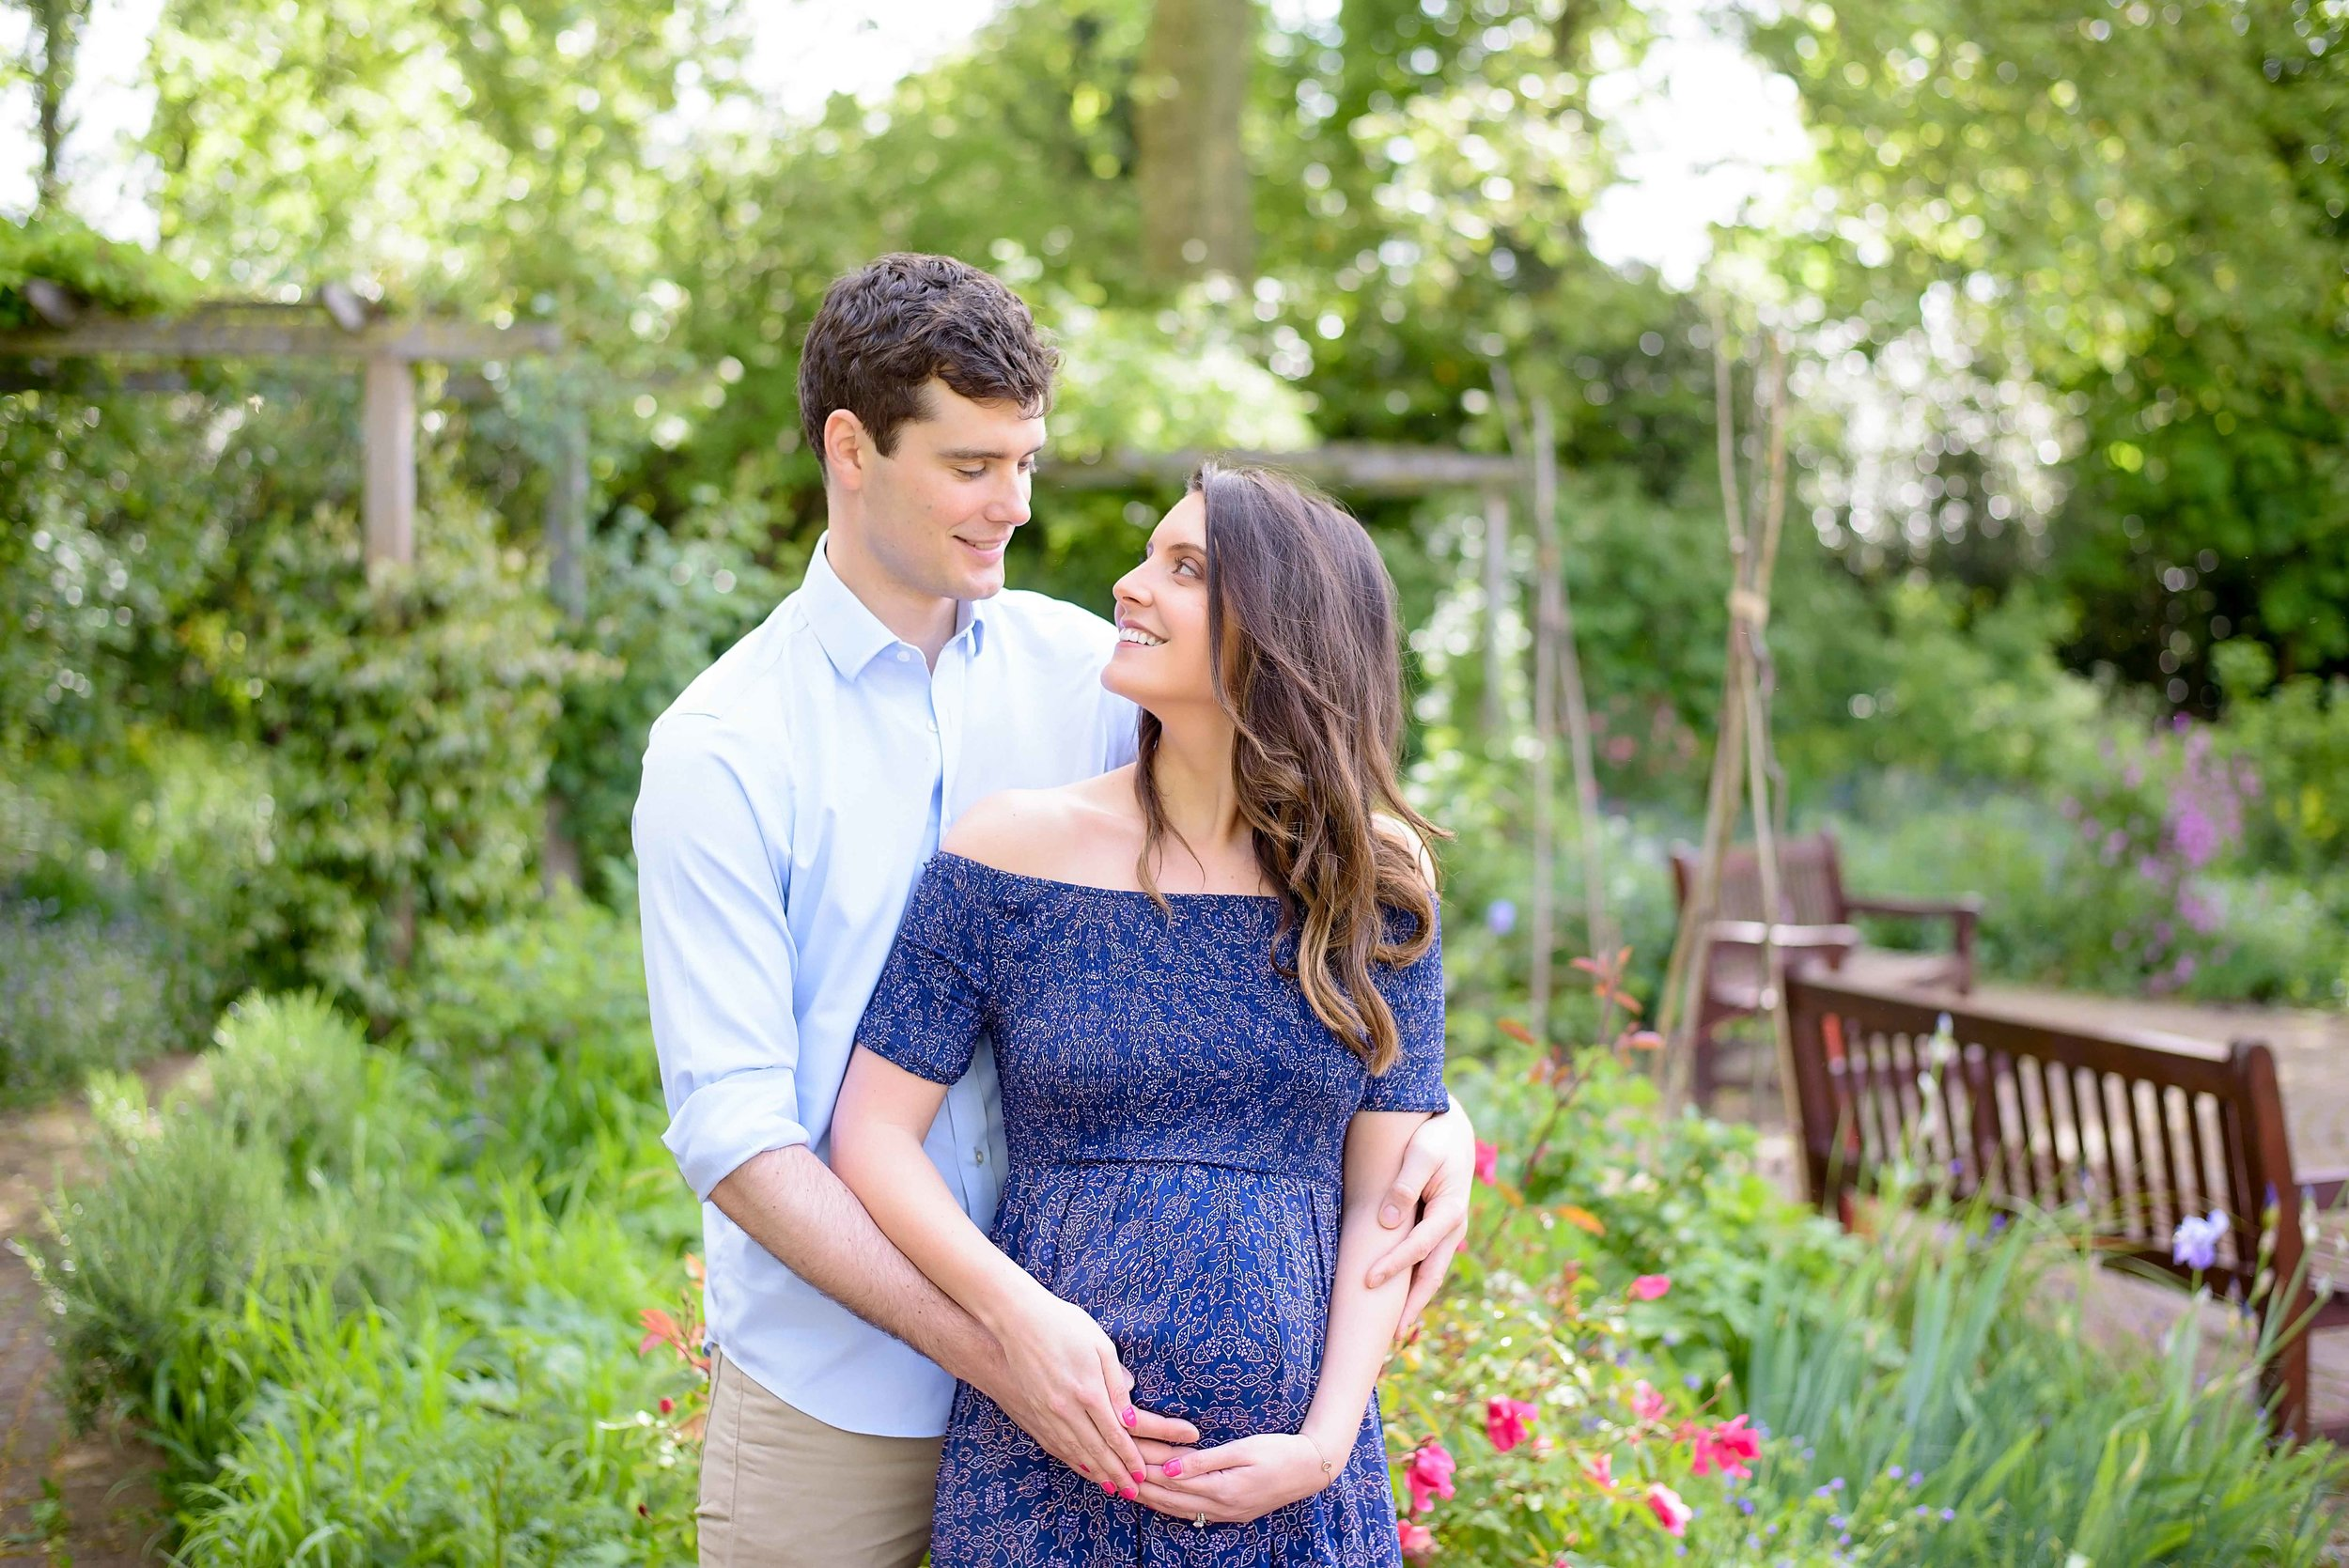 Contemporary pregnancy photography UK